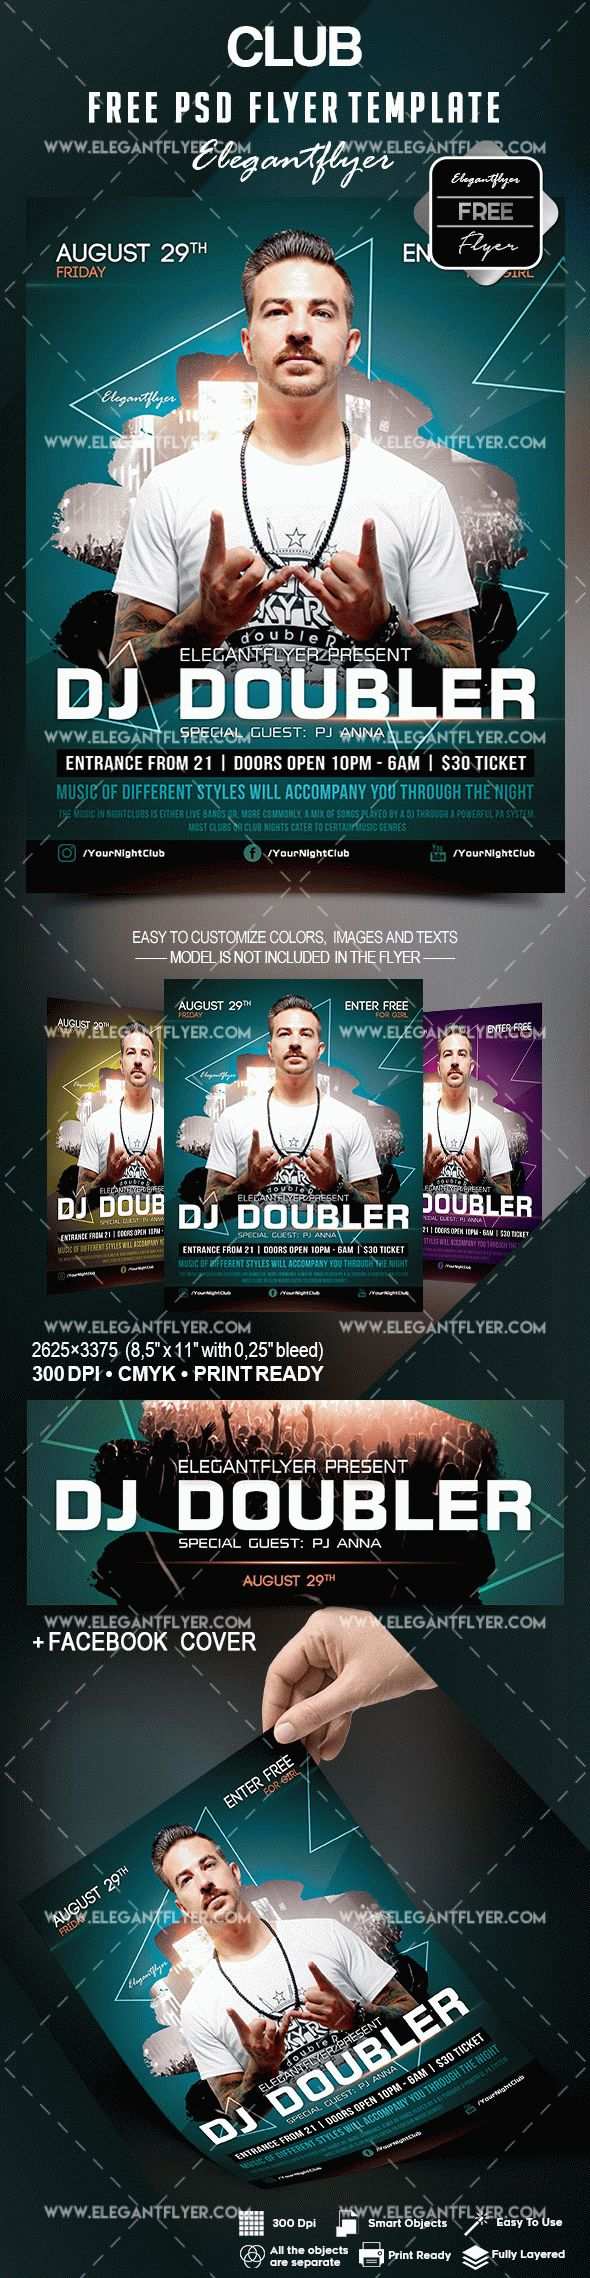 free club flyer template